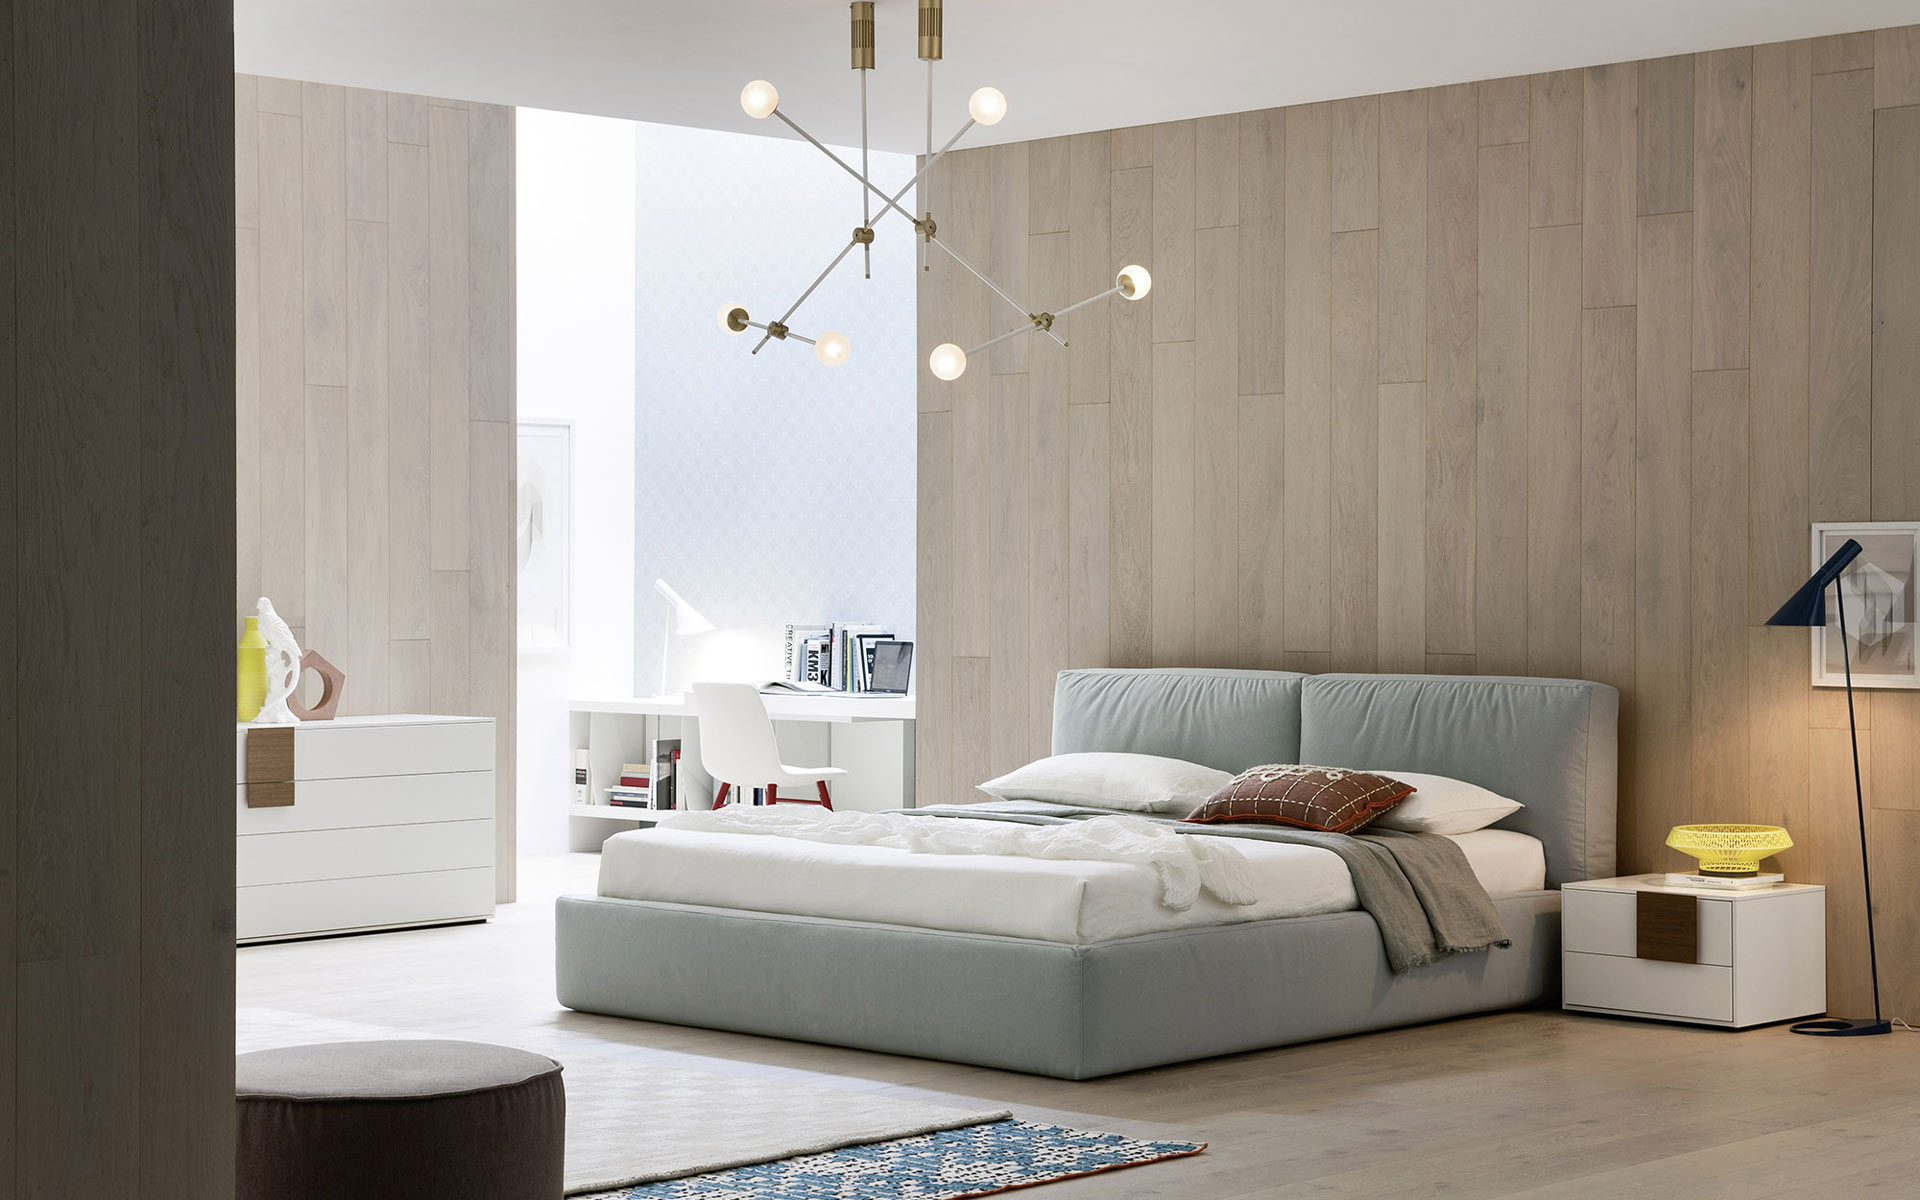 SLAAPKAMER DESIGN - Blog van Bed Habits, de expert in ...